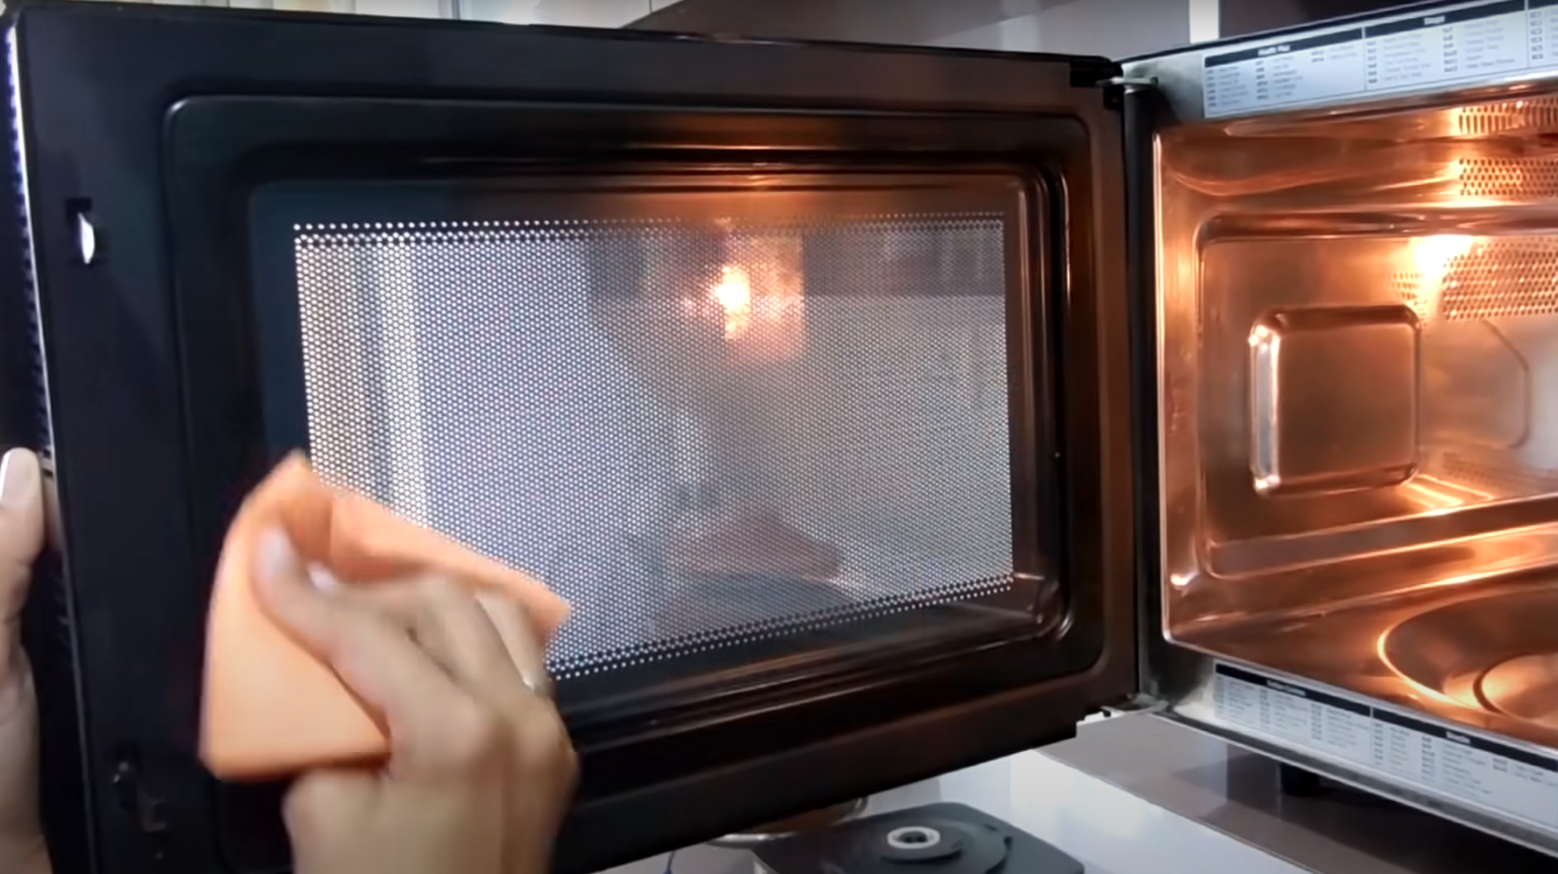 How is correct to maintain the microwave in order